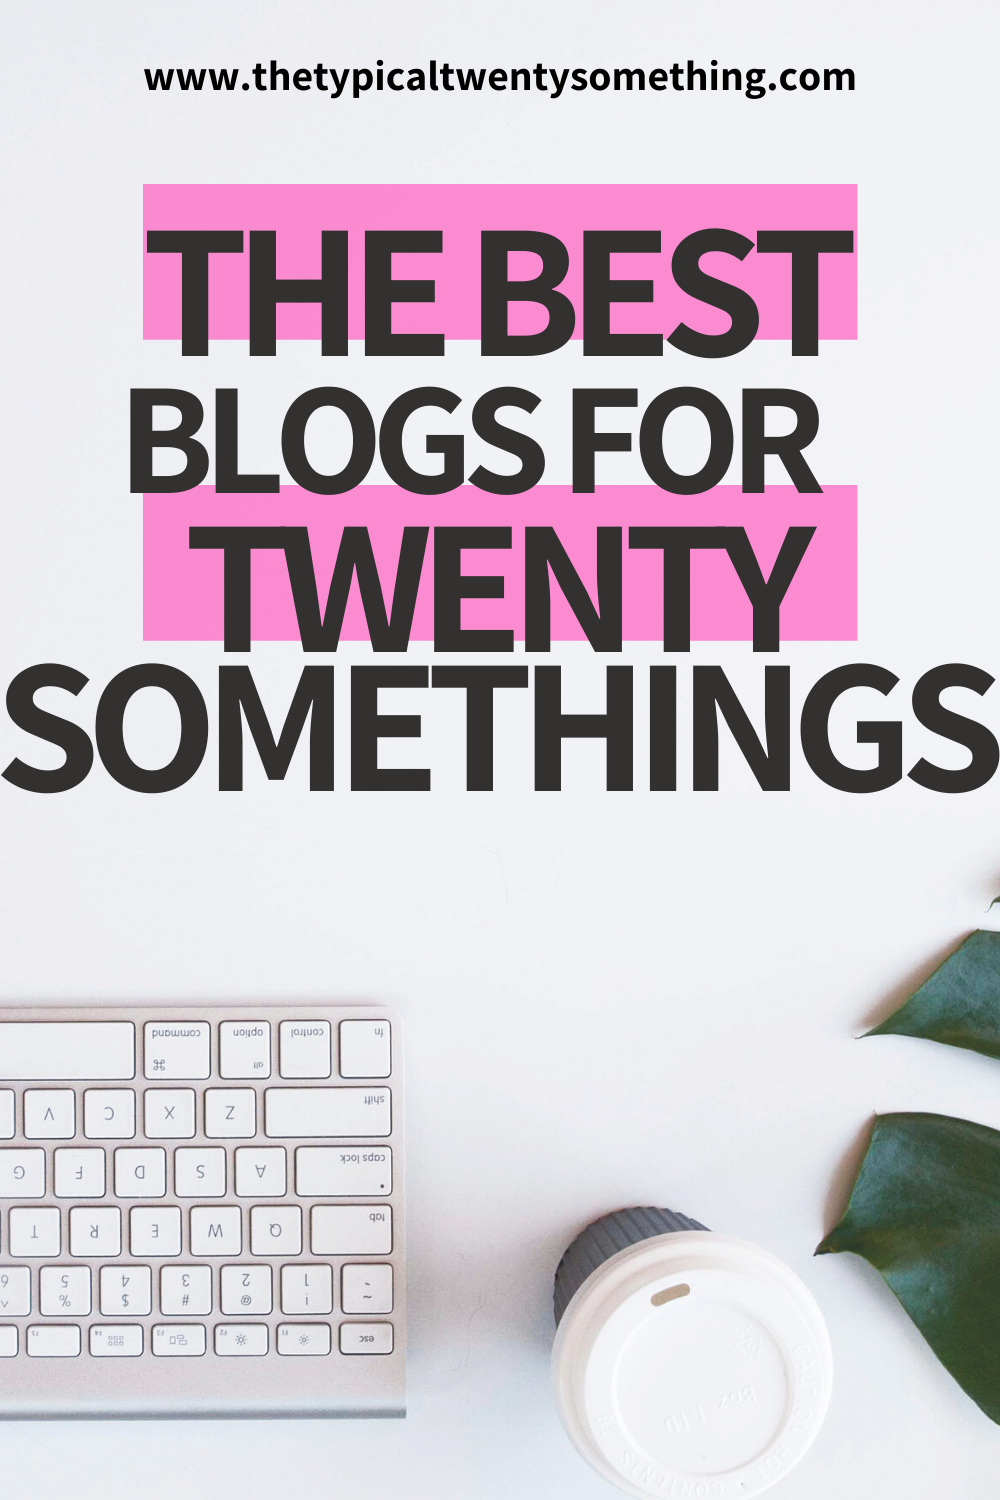 If you are a twenty-something, you must check out theses twenty something bloggers. Here are the best blogs for twenty somethings! Being in your twenties is hard, from books, to outfits, to gifts, figuring out how to navigate as a millennial is no easy task. These blogs should help you get through your twenties!